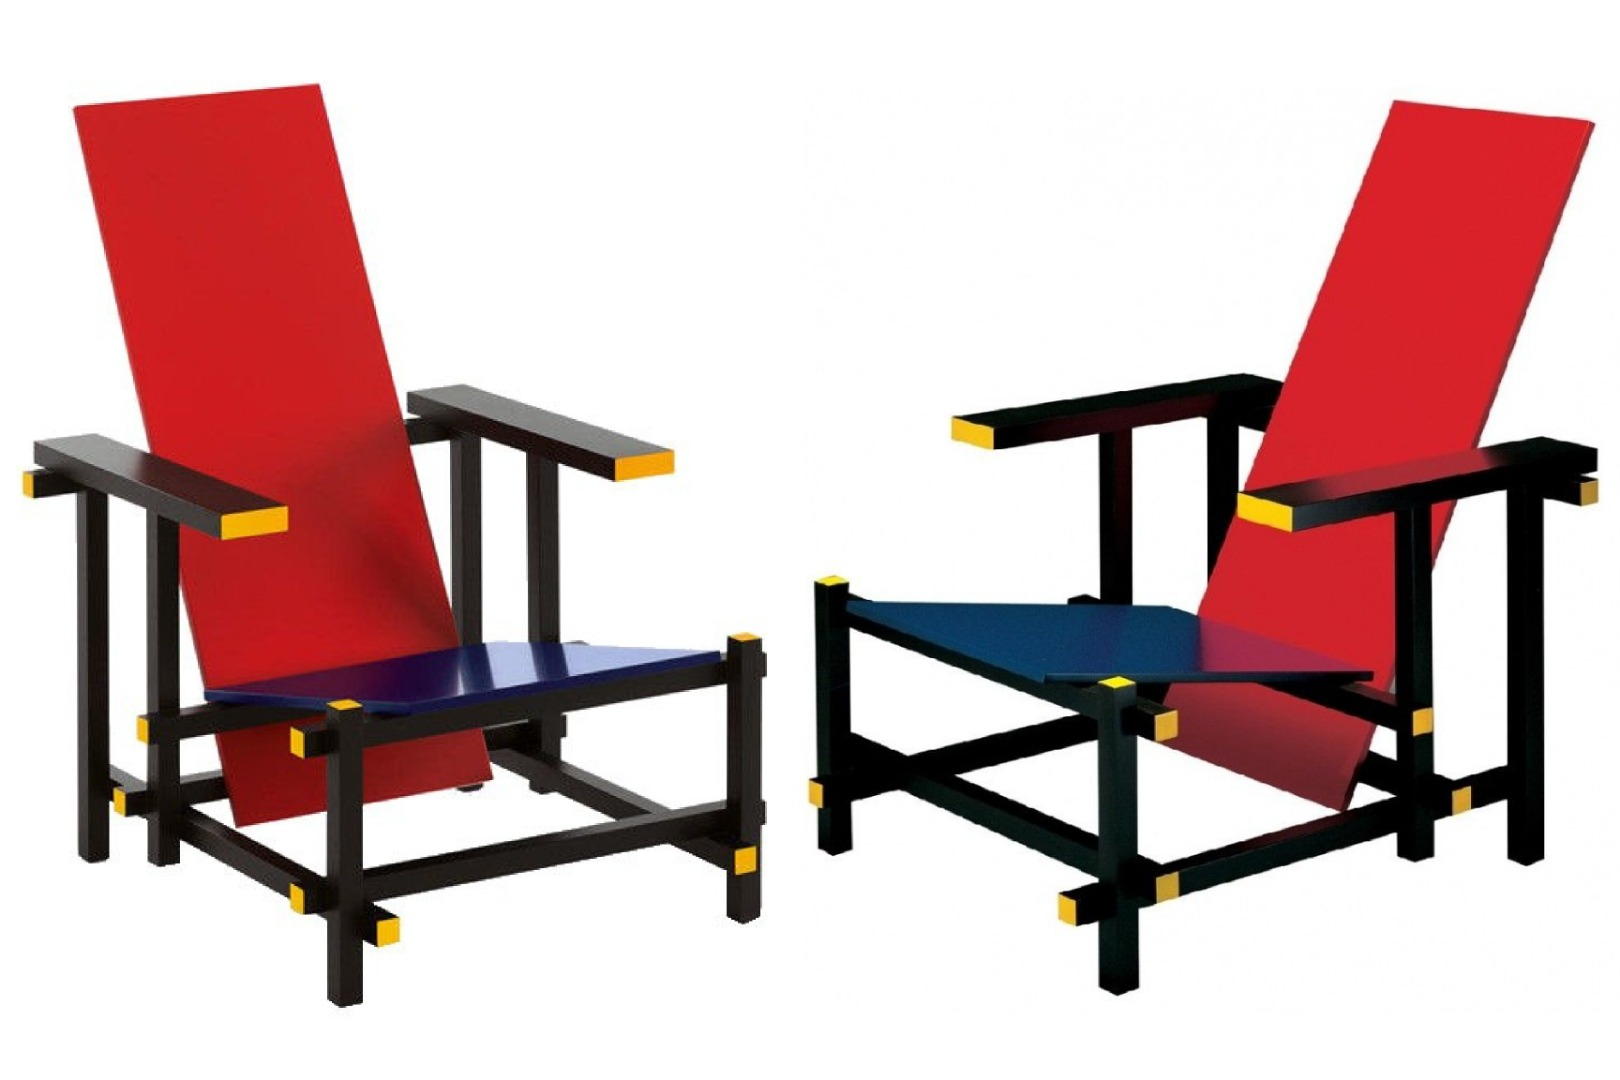 PAIR OF ARMCHAIRS  AFTER GERRIT RIETVELD